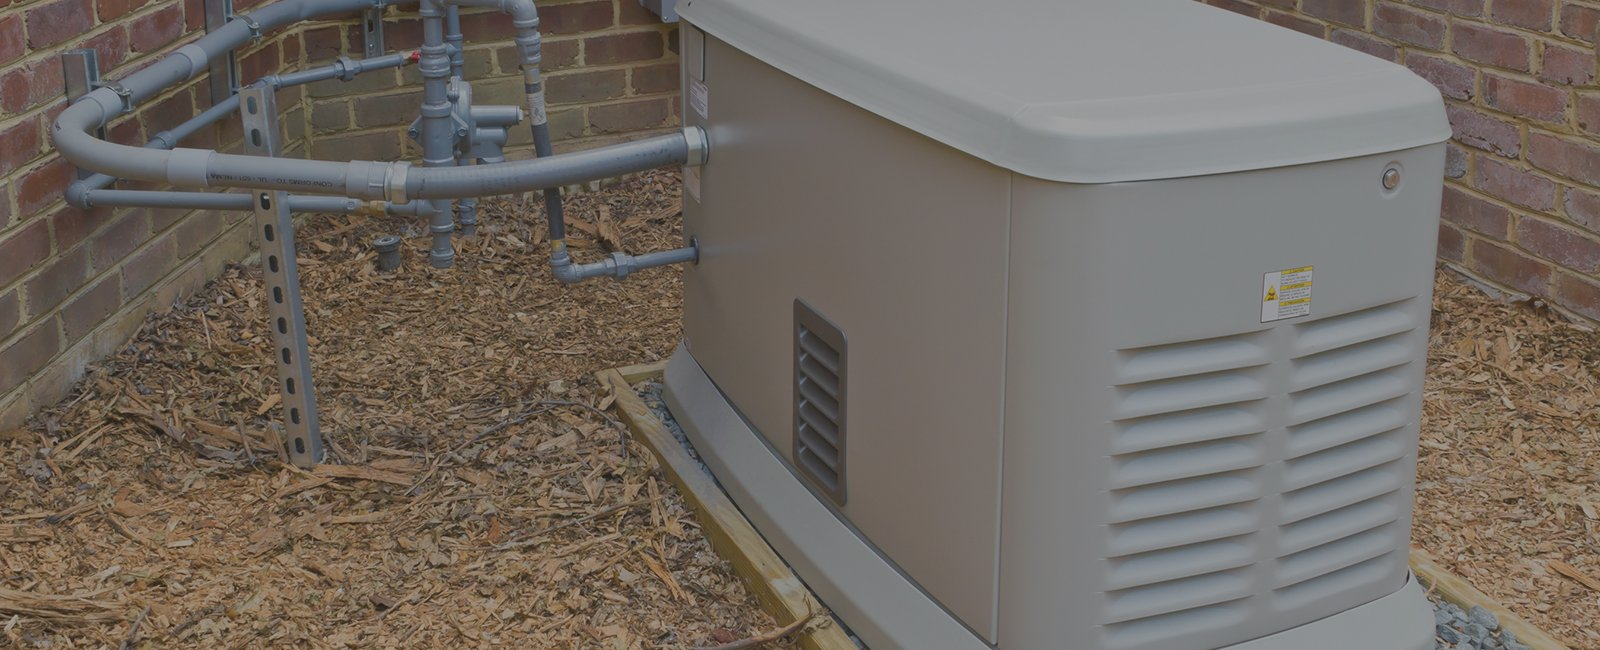 standby generator installed for home